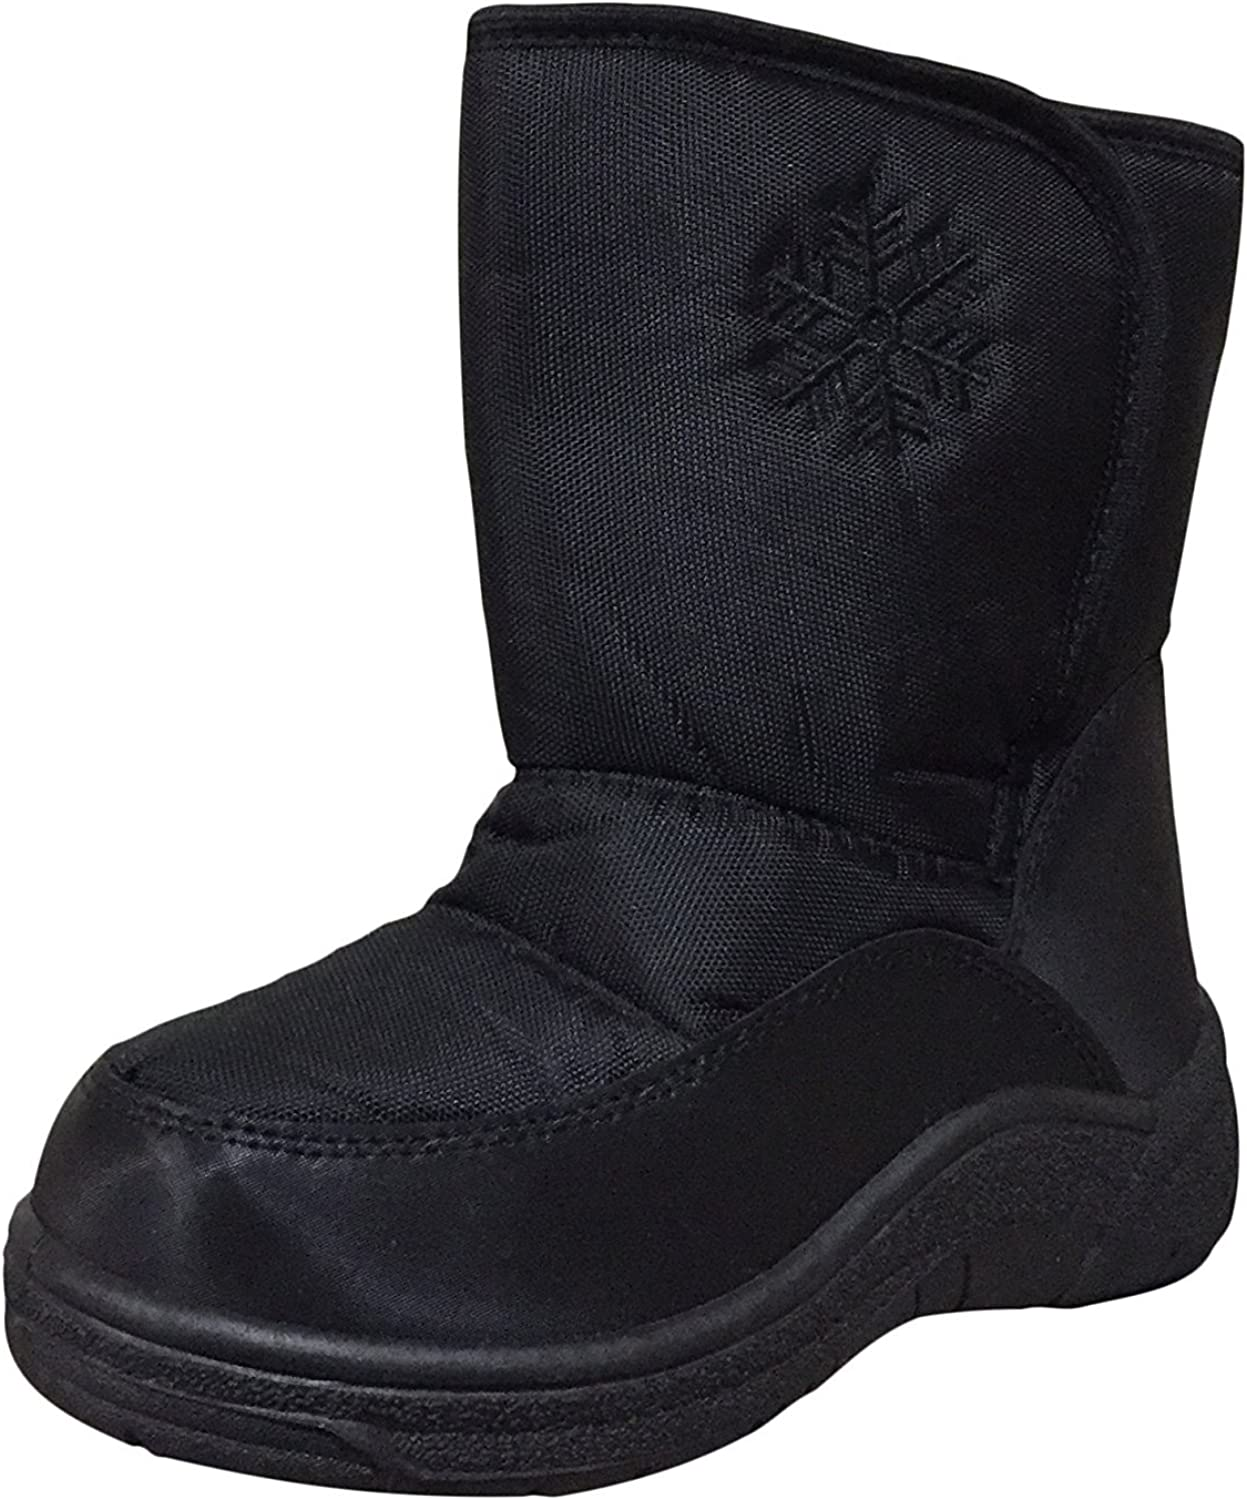 10 M US Toddler, Black PSW SJ600 Toddlers Infant Snow Boots